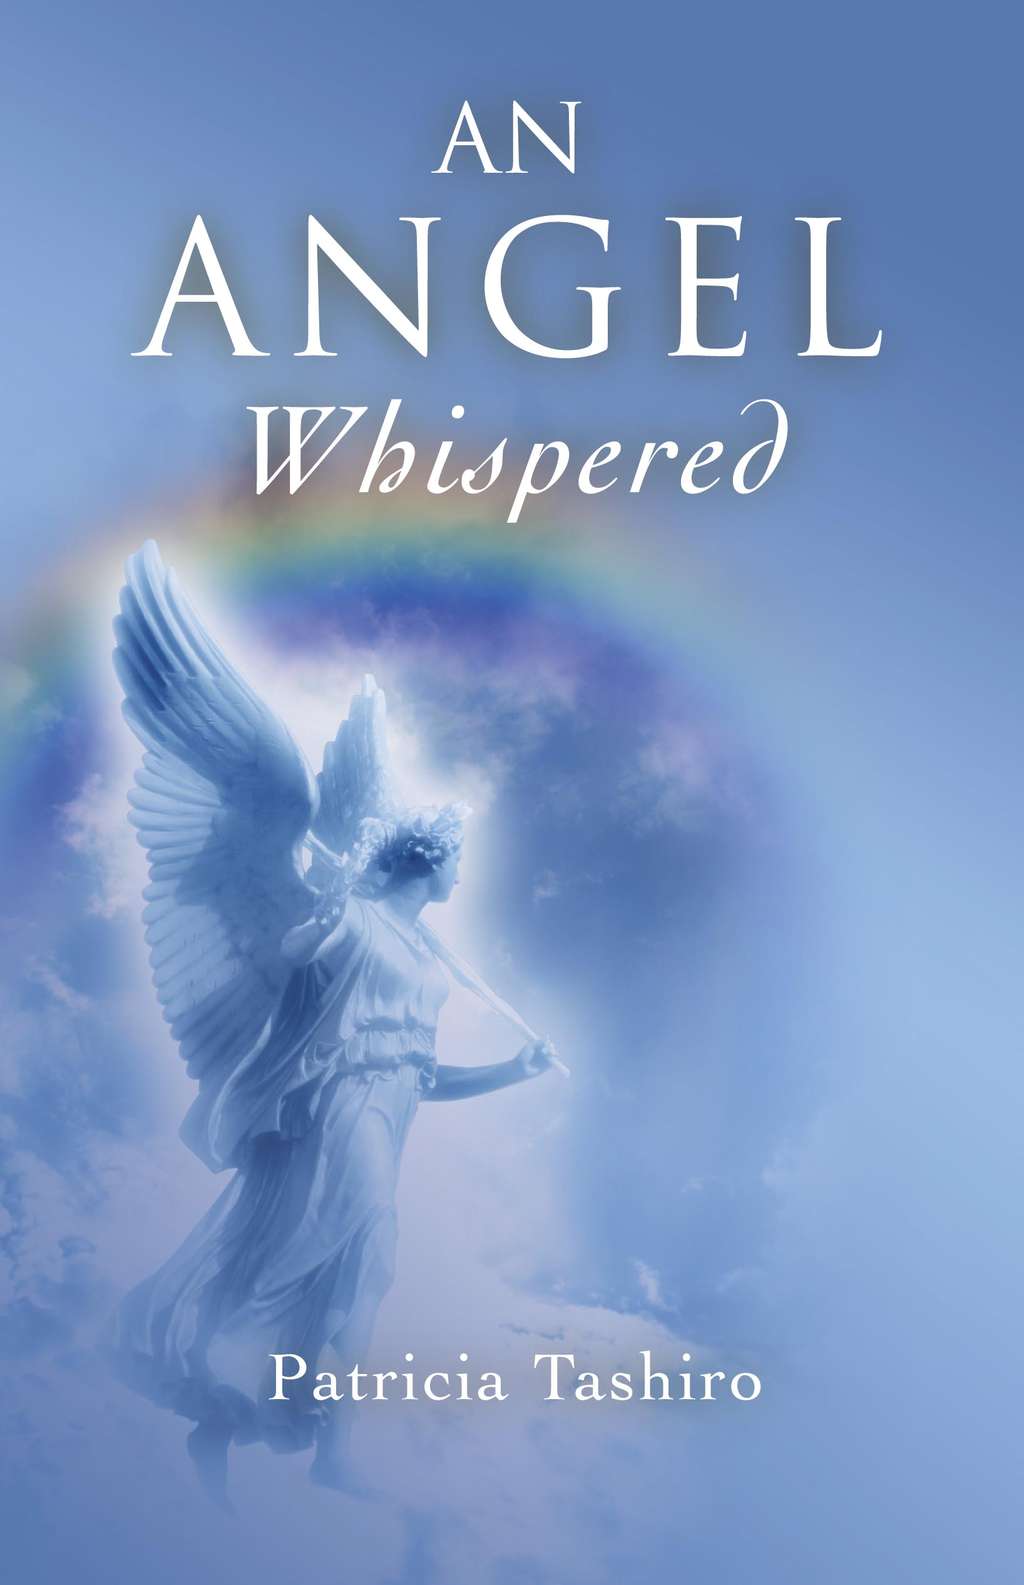 An Angel Whispered